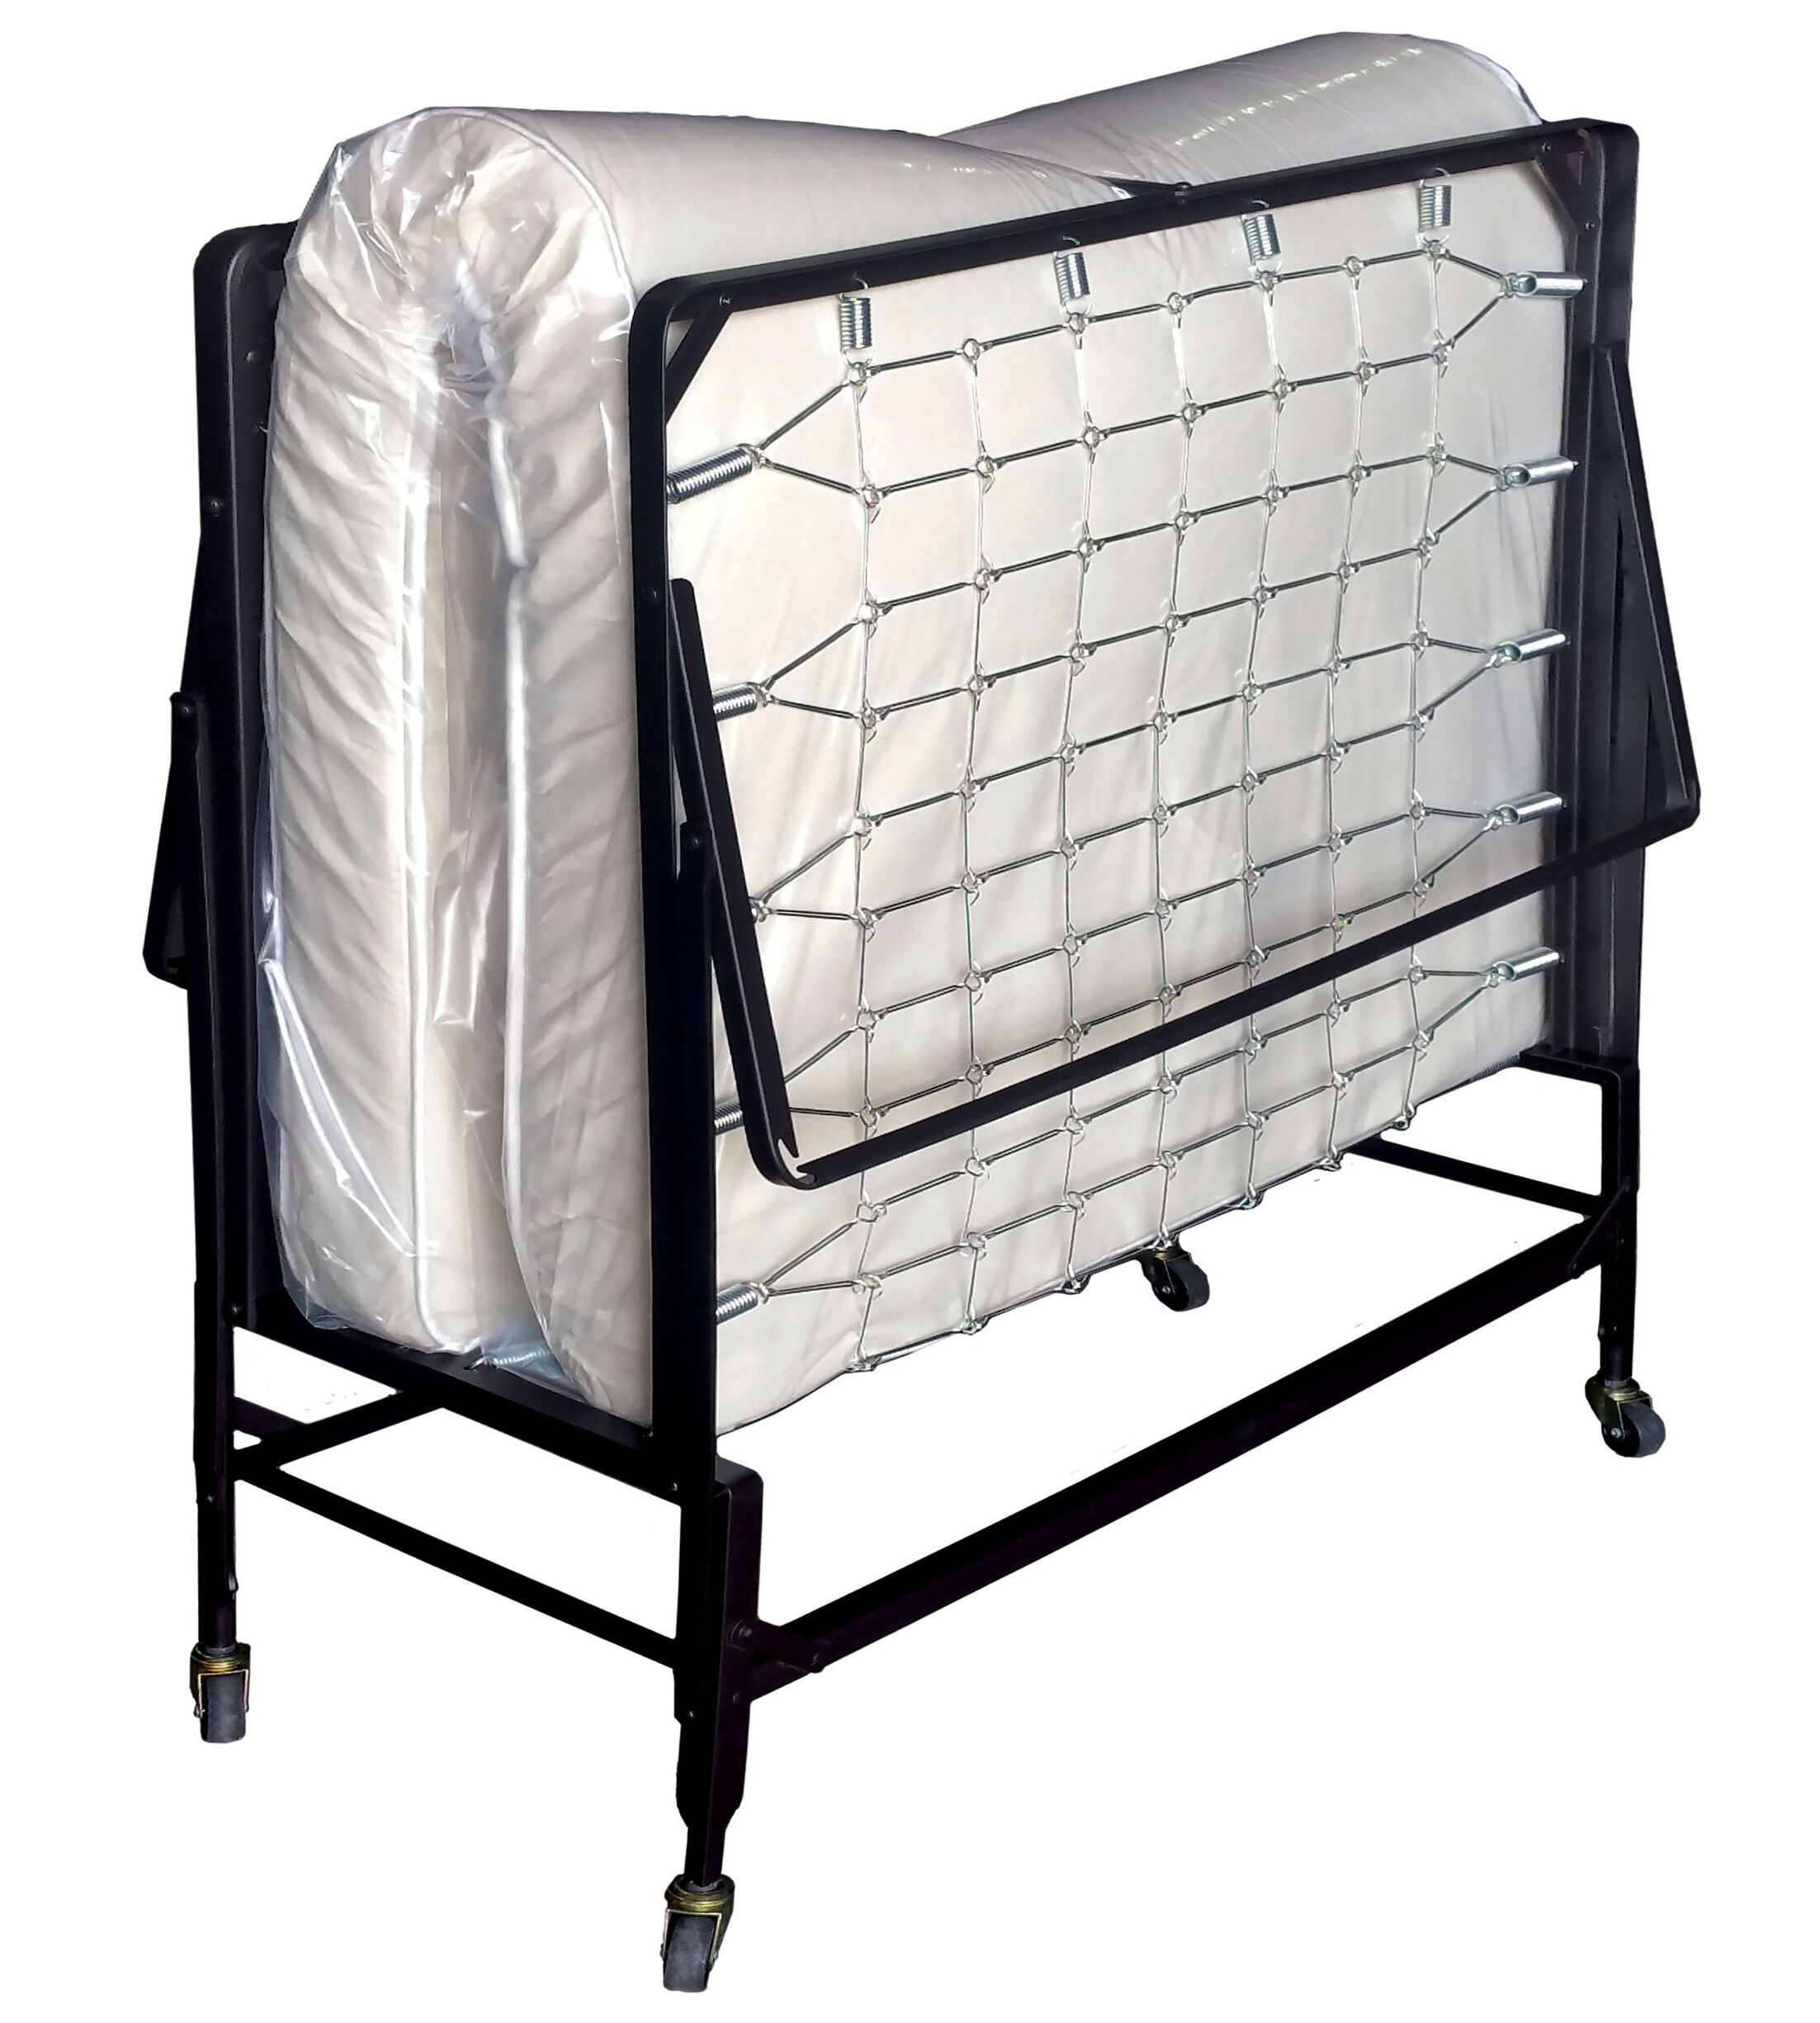 Folding Bed with Mattress Size: 47.25